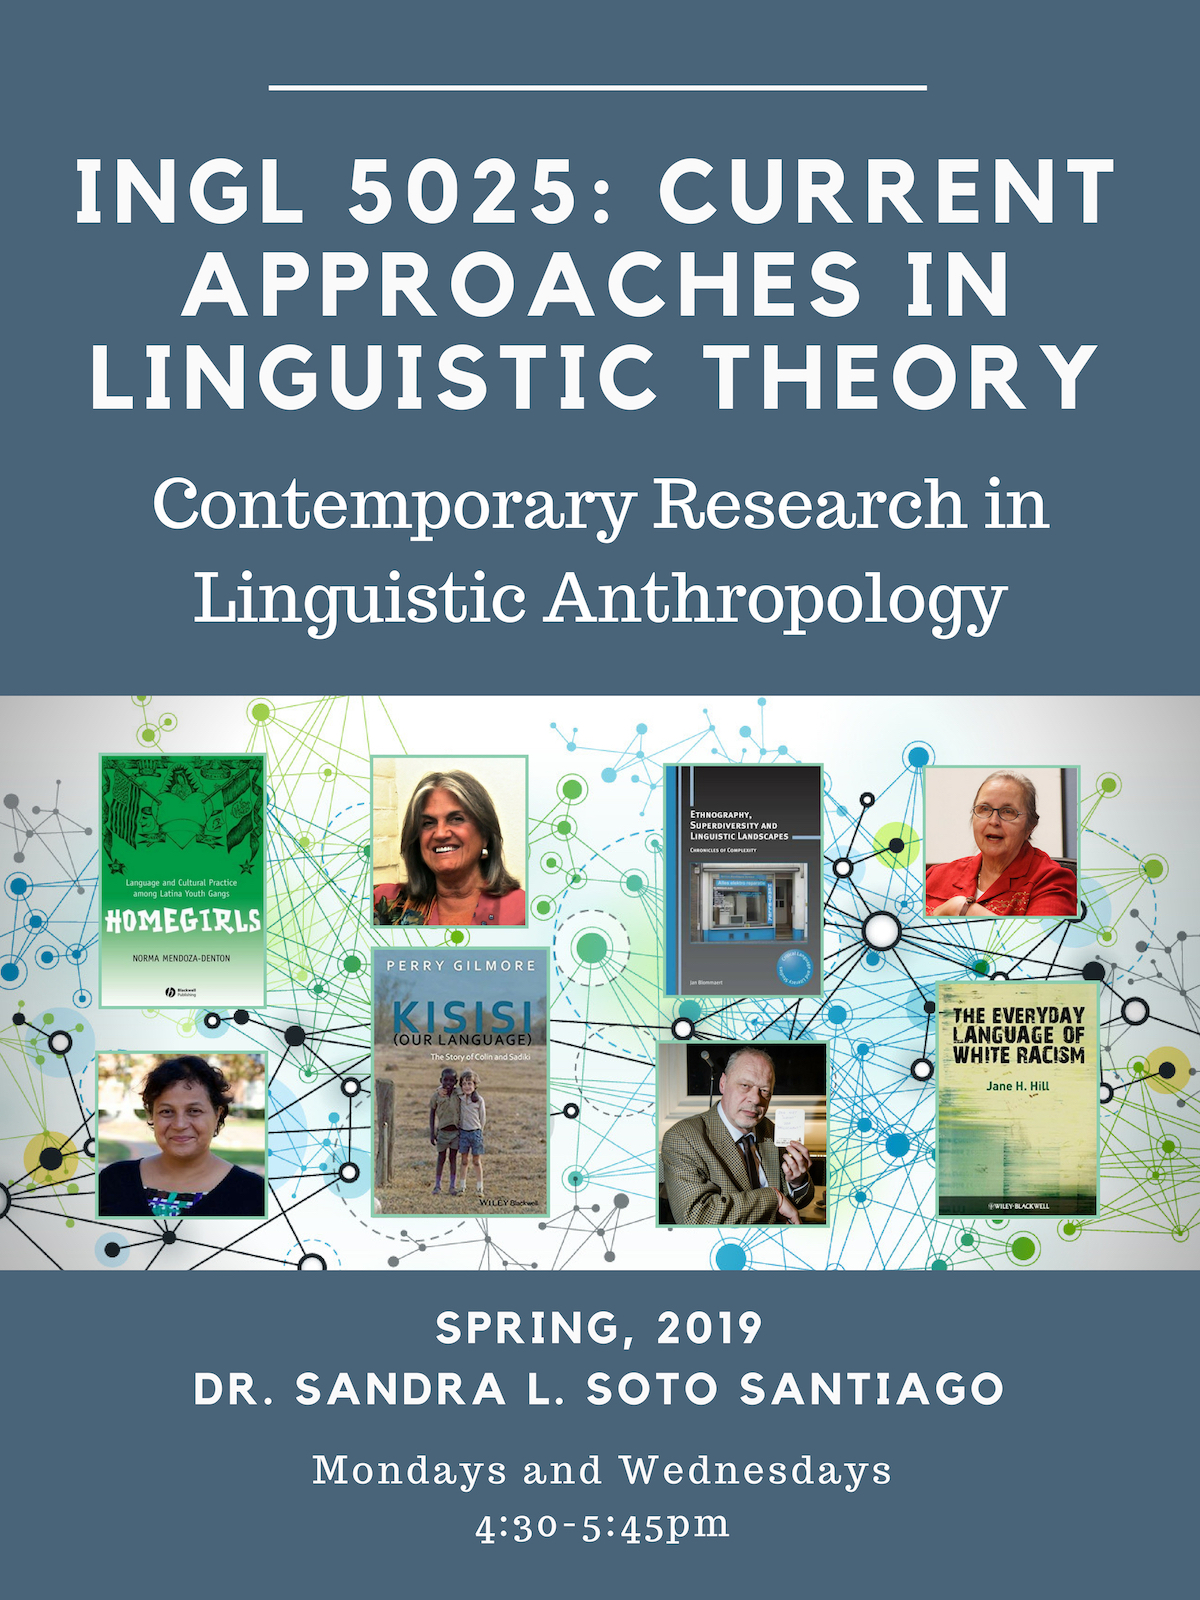 [Course Promo] INGL 5025: Contemporary Research in Linguistic Anthropology